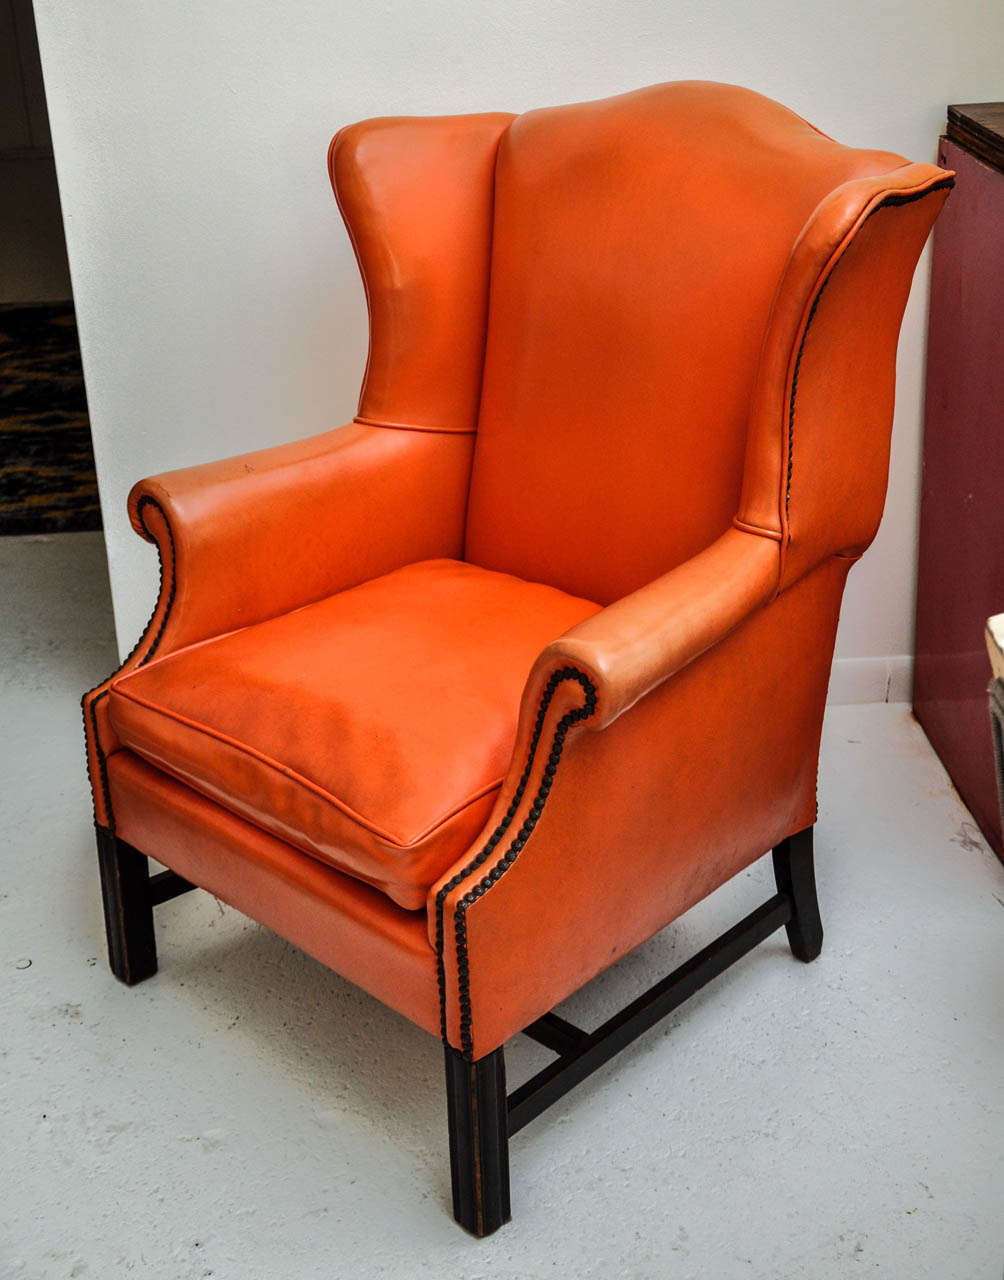 Vintage Orange Leather Wing Chair 2